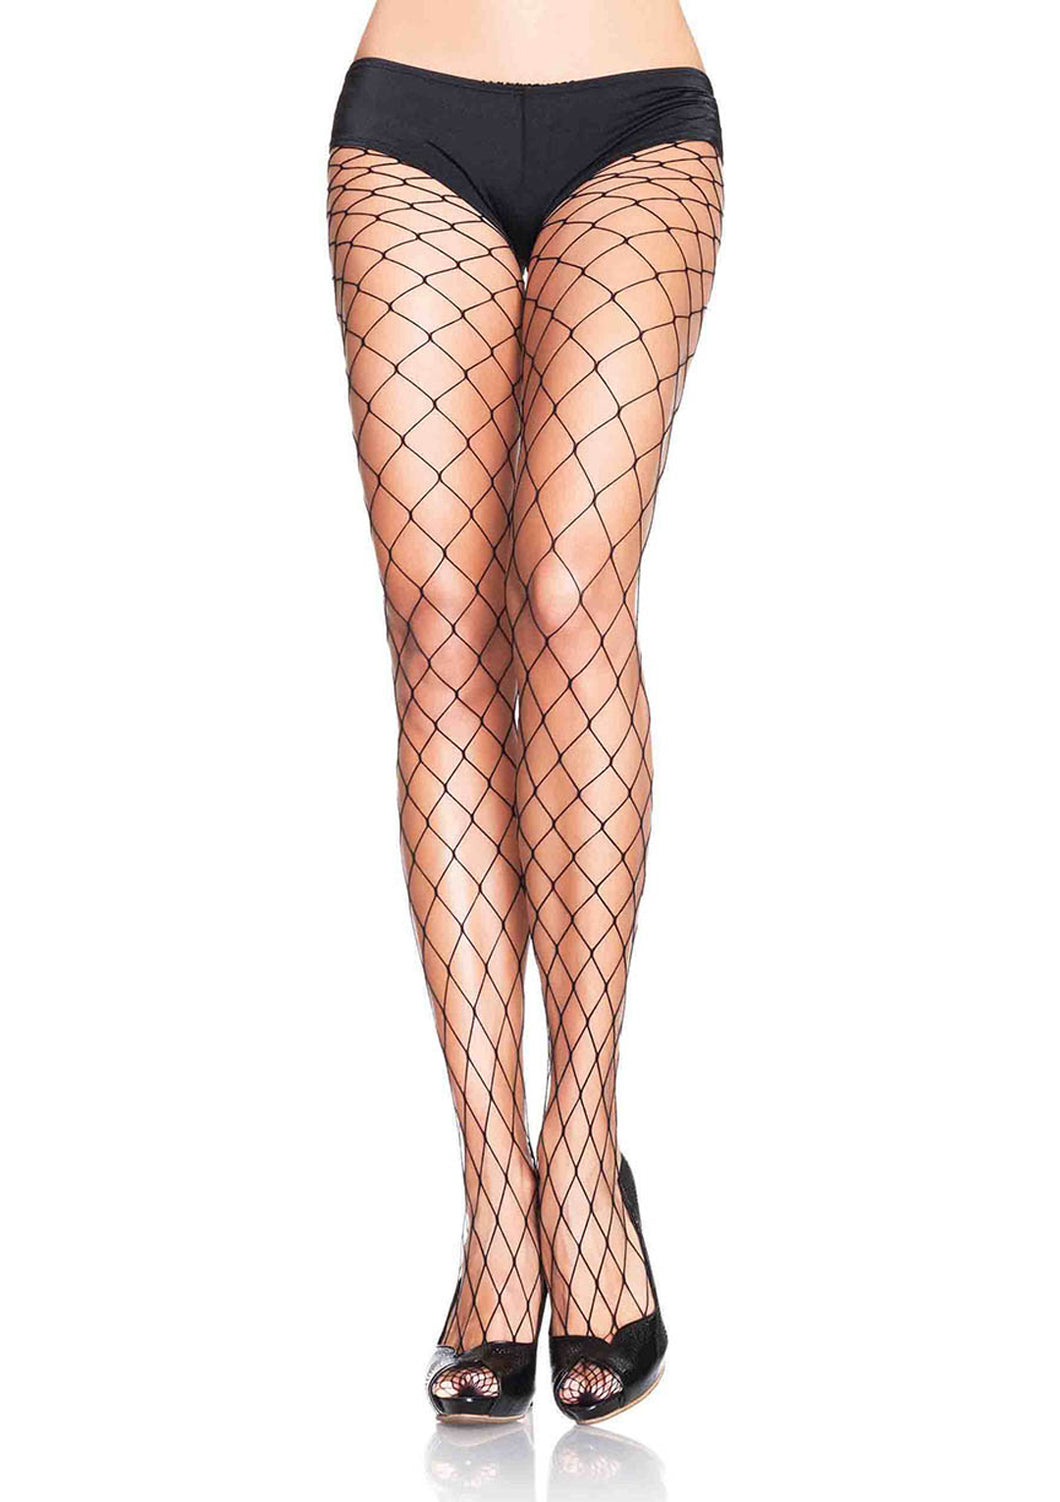 Leg Avenue Plus Size Fence Net Pantyhose